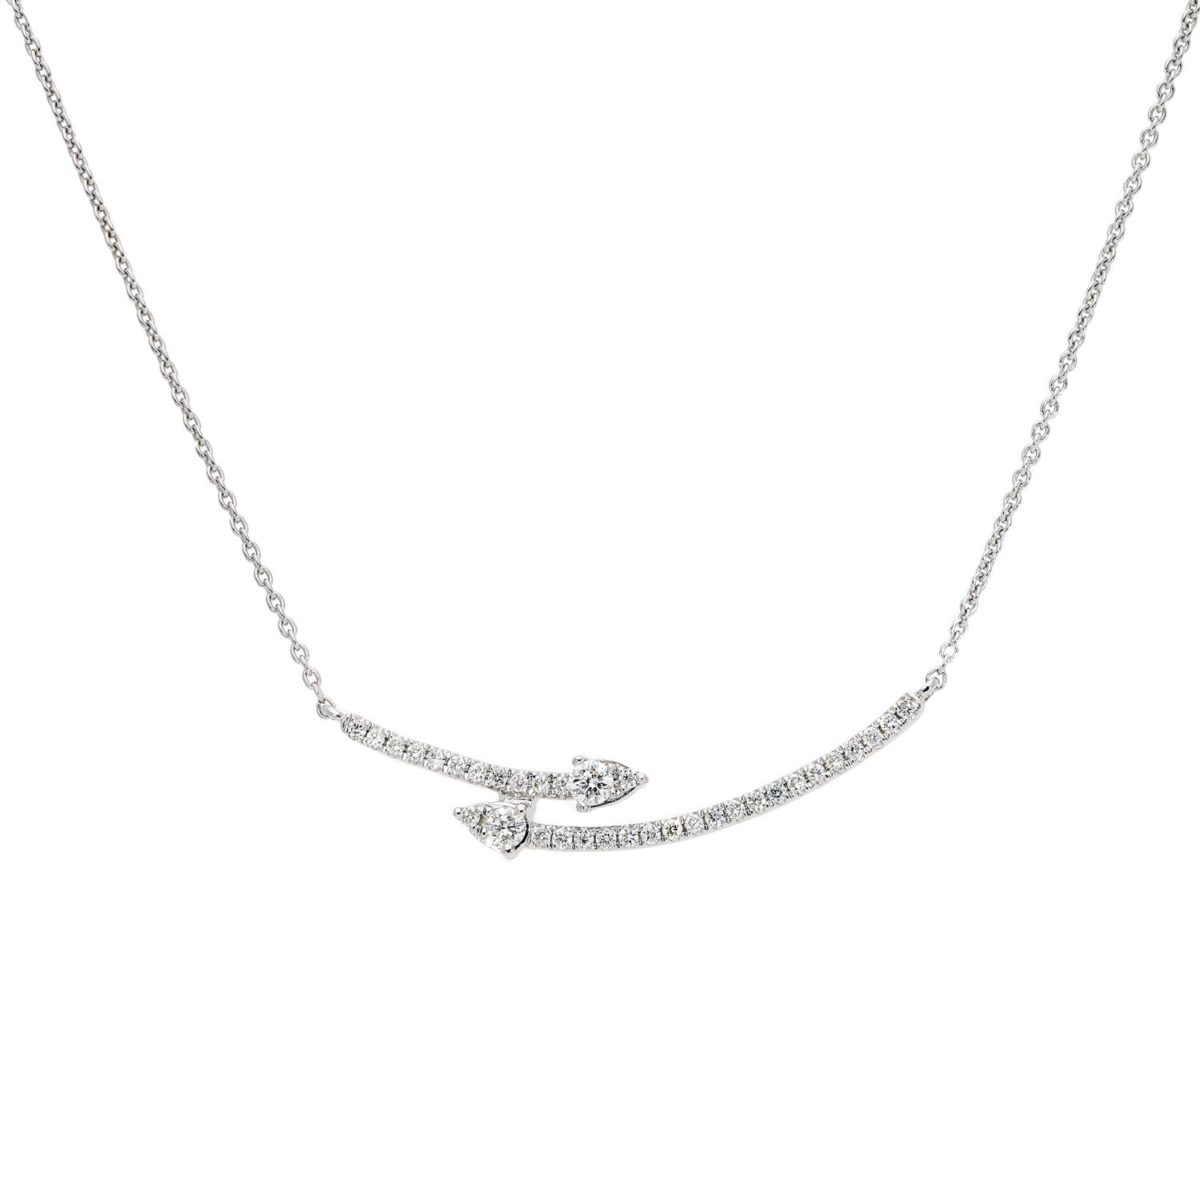 Diamond NecklaceStyle #: ROY-WC9739D